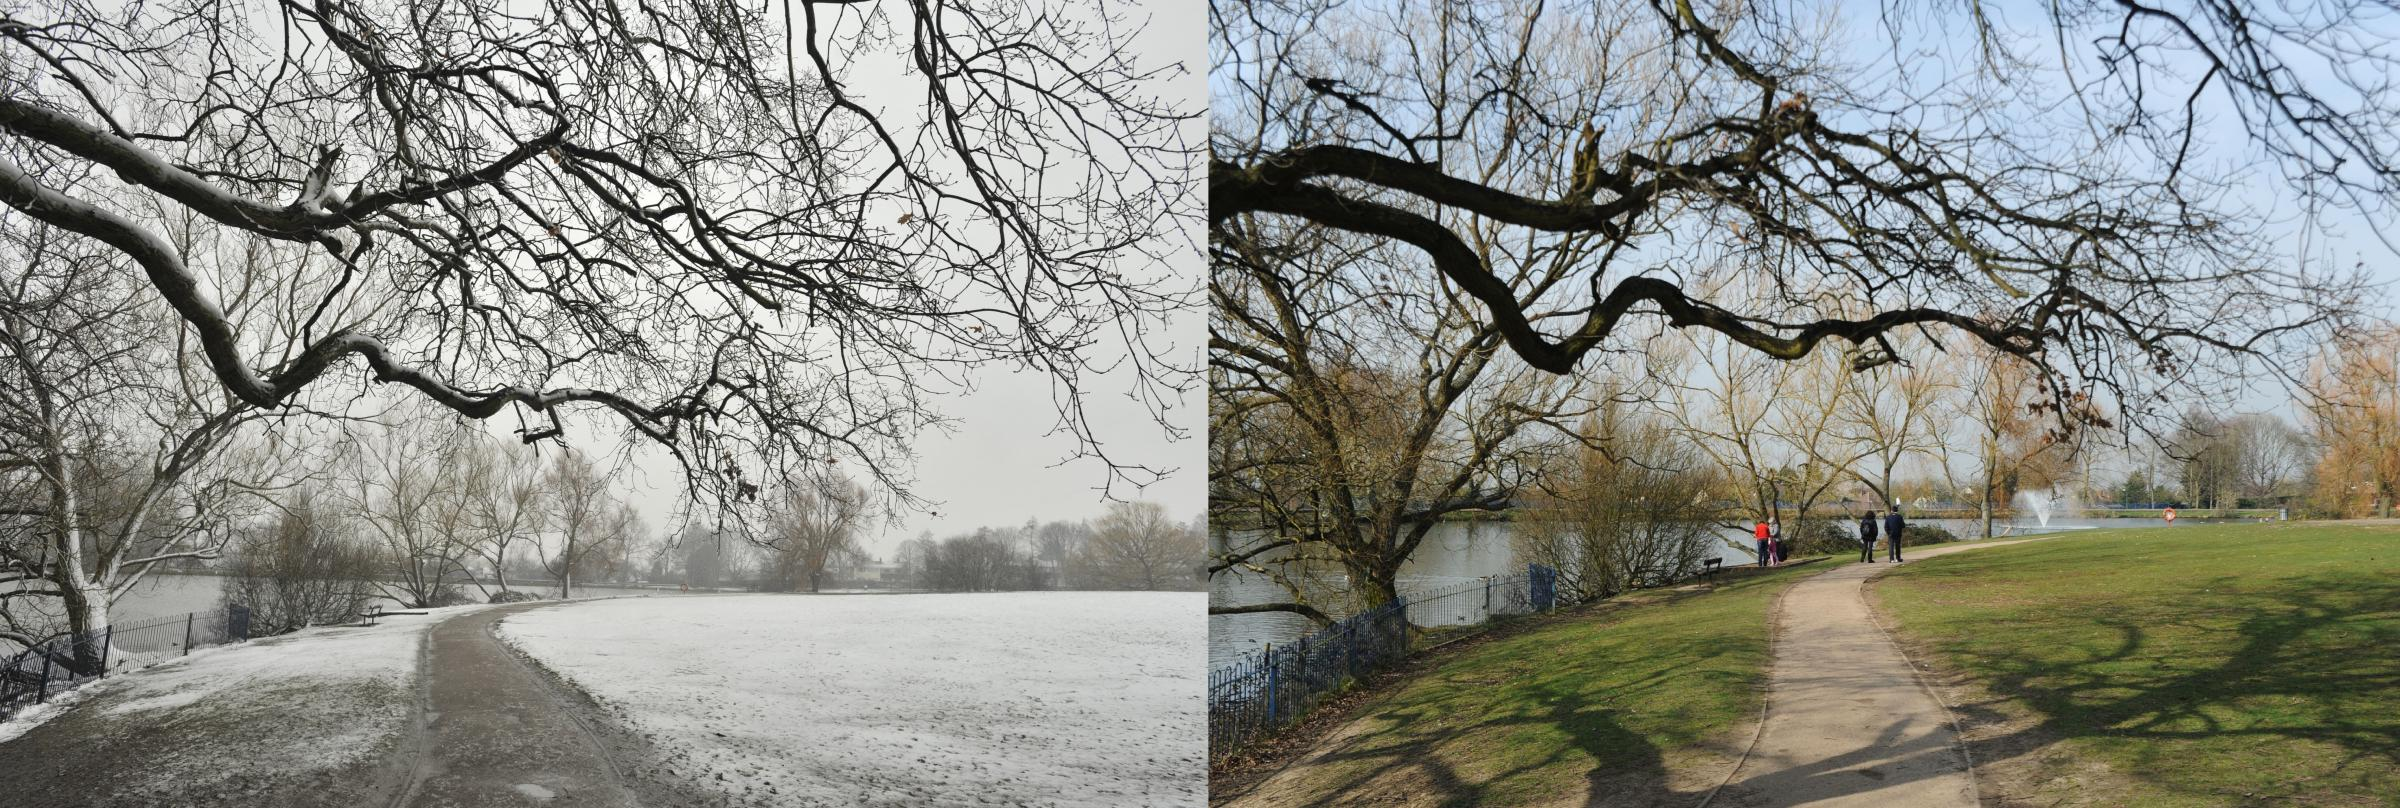 Lake Meadows Billericay in March last year and this year